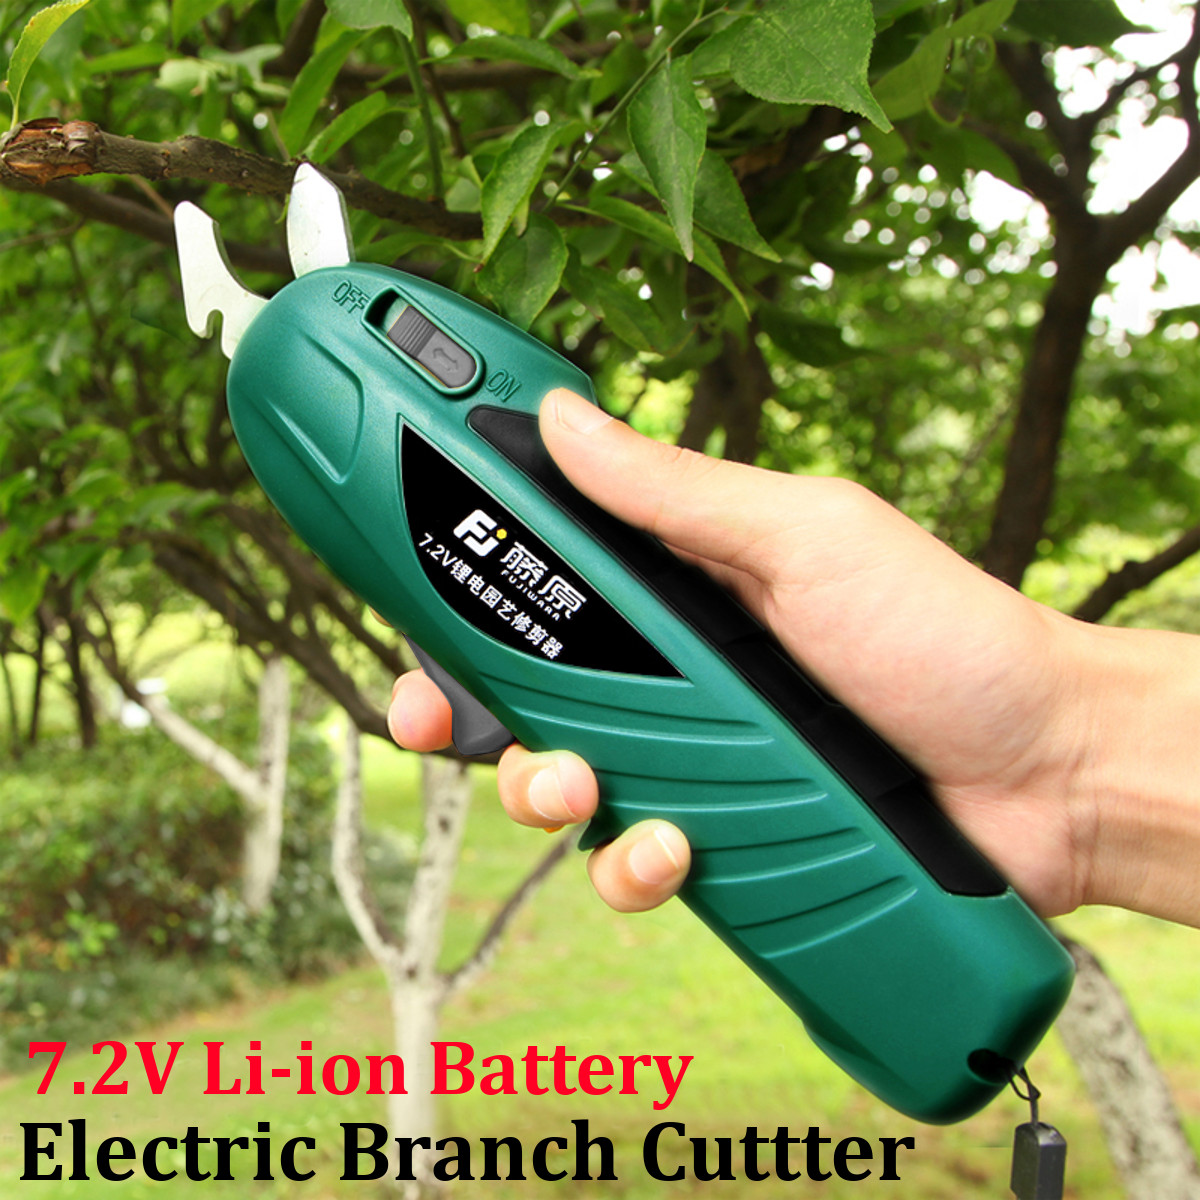 7.2V Li-ion Electric Pruning Shears Rechargeable Professional Tree Trimmers Secateurs Cutting Scisso